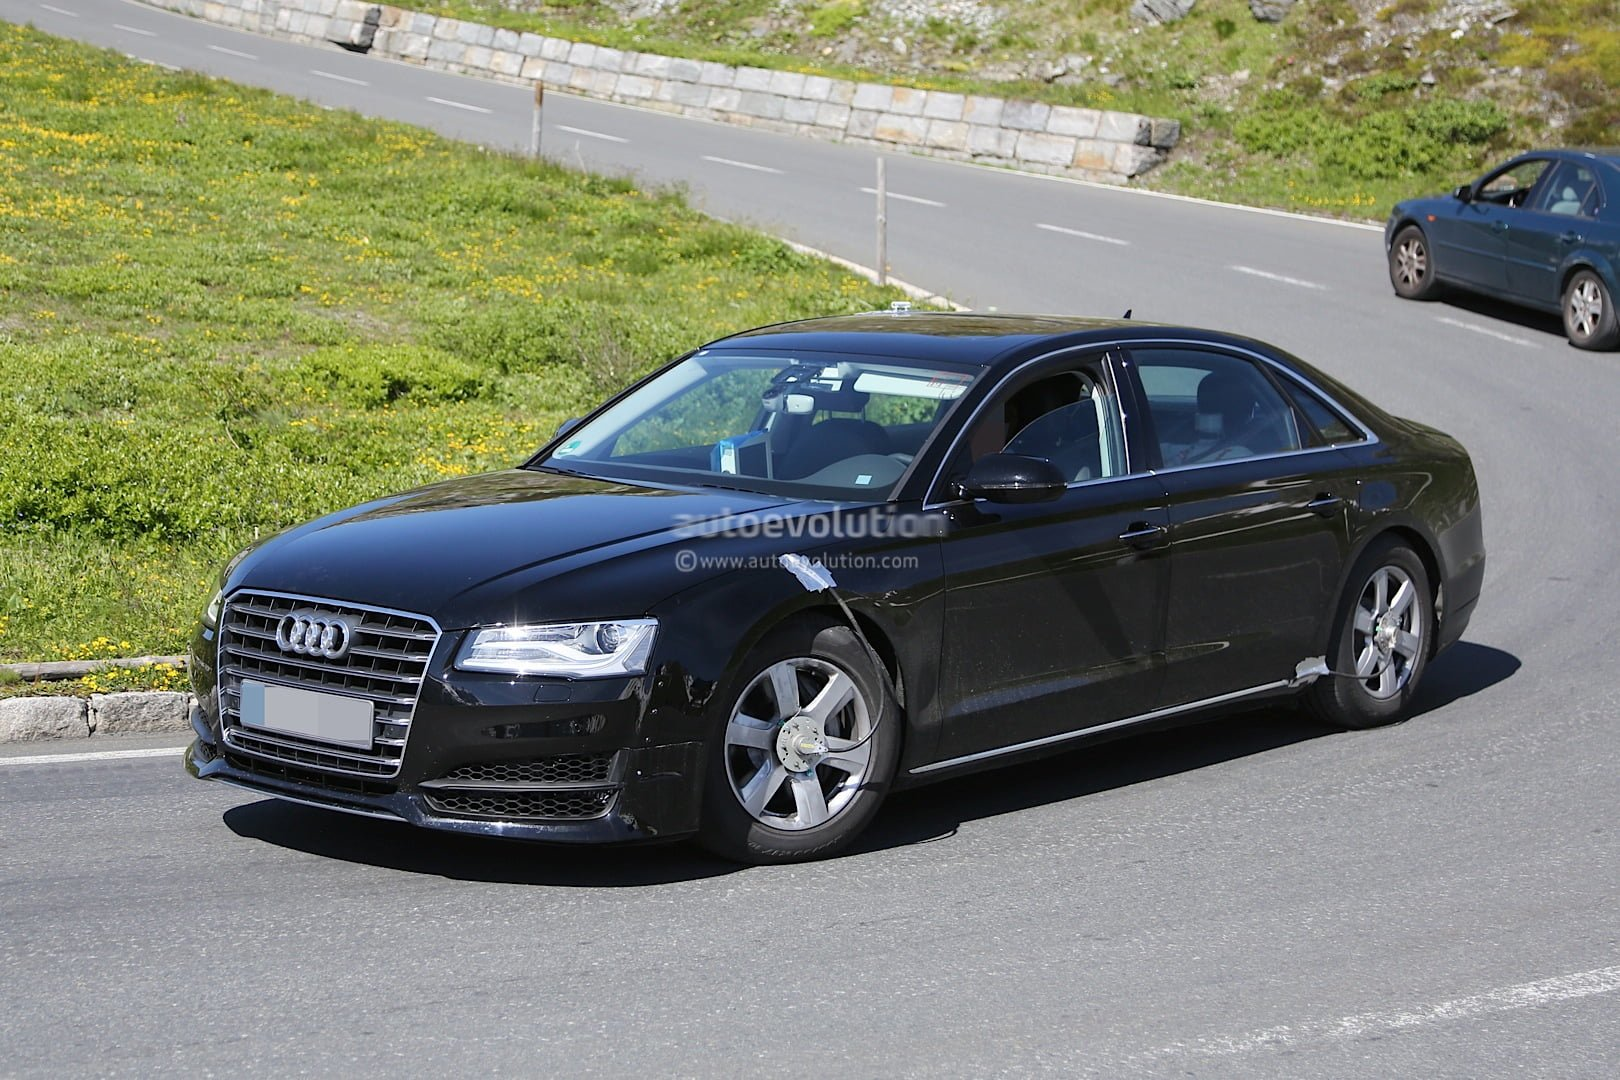 Spyshots All New Audi A8 For 2016 Captured In First Photos